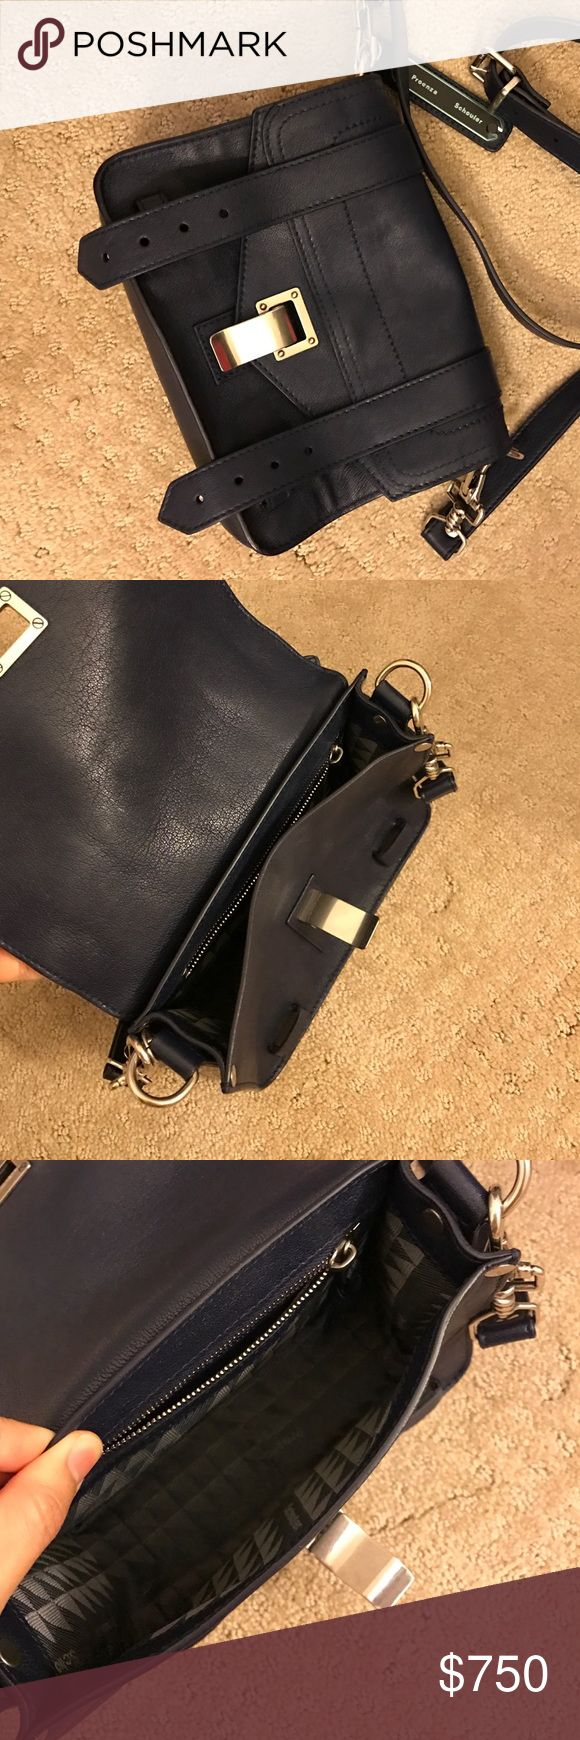 Proenza Schouler mini PS1 crossbody 【new】 Brand new proenza schouler crossbody bag! The color is navy blue. No trades plz. Can do lower on 🅿️🅿️. Proenza Schouler Bags Crossbody Bags